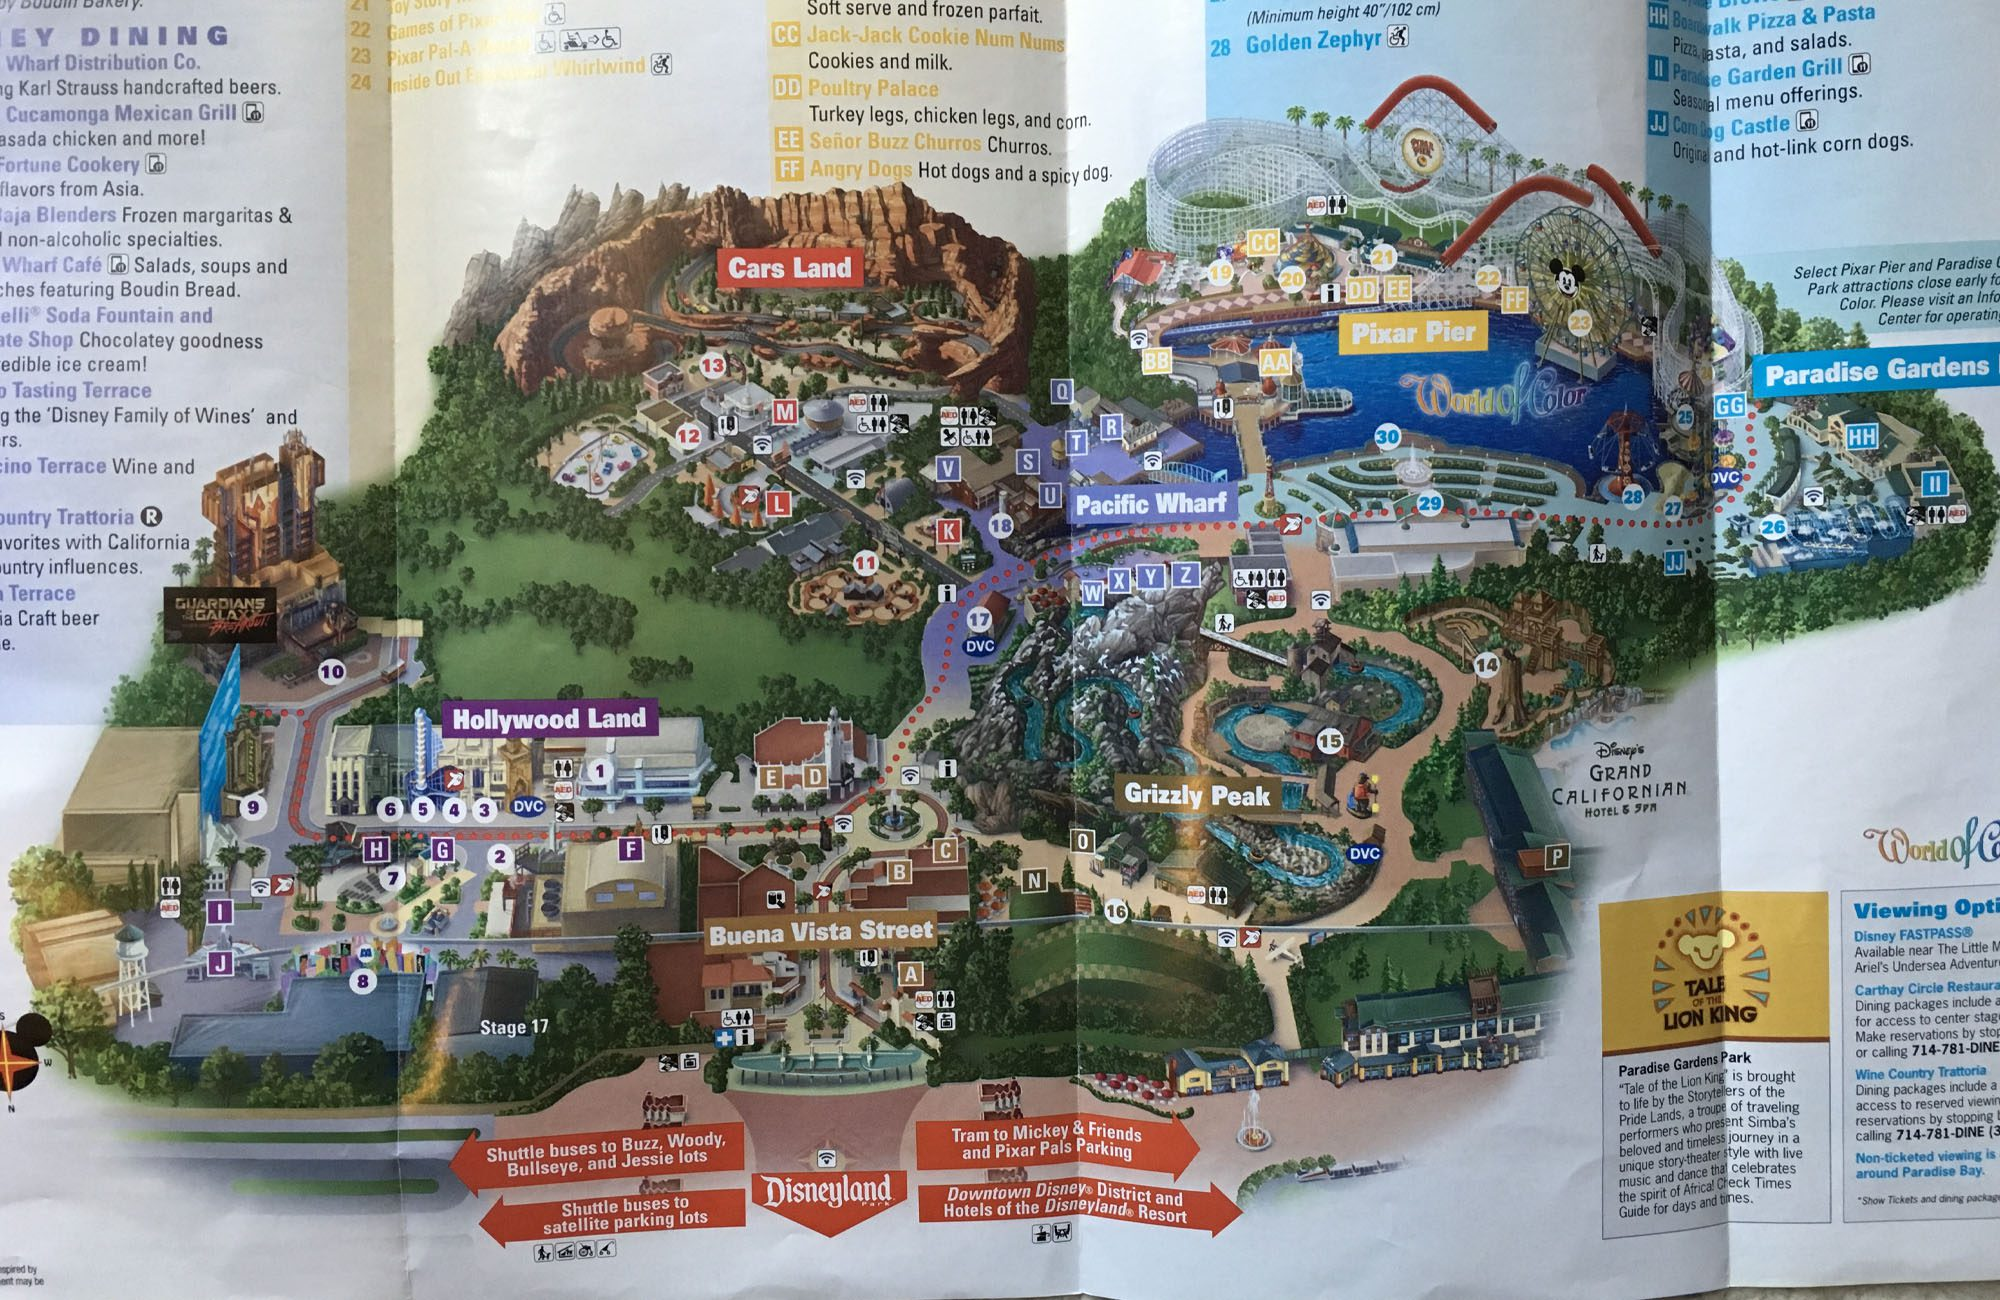 2019 Disney California Adventure map